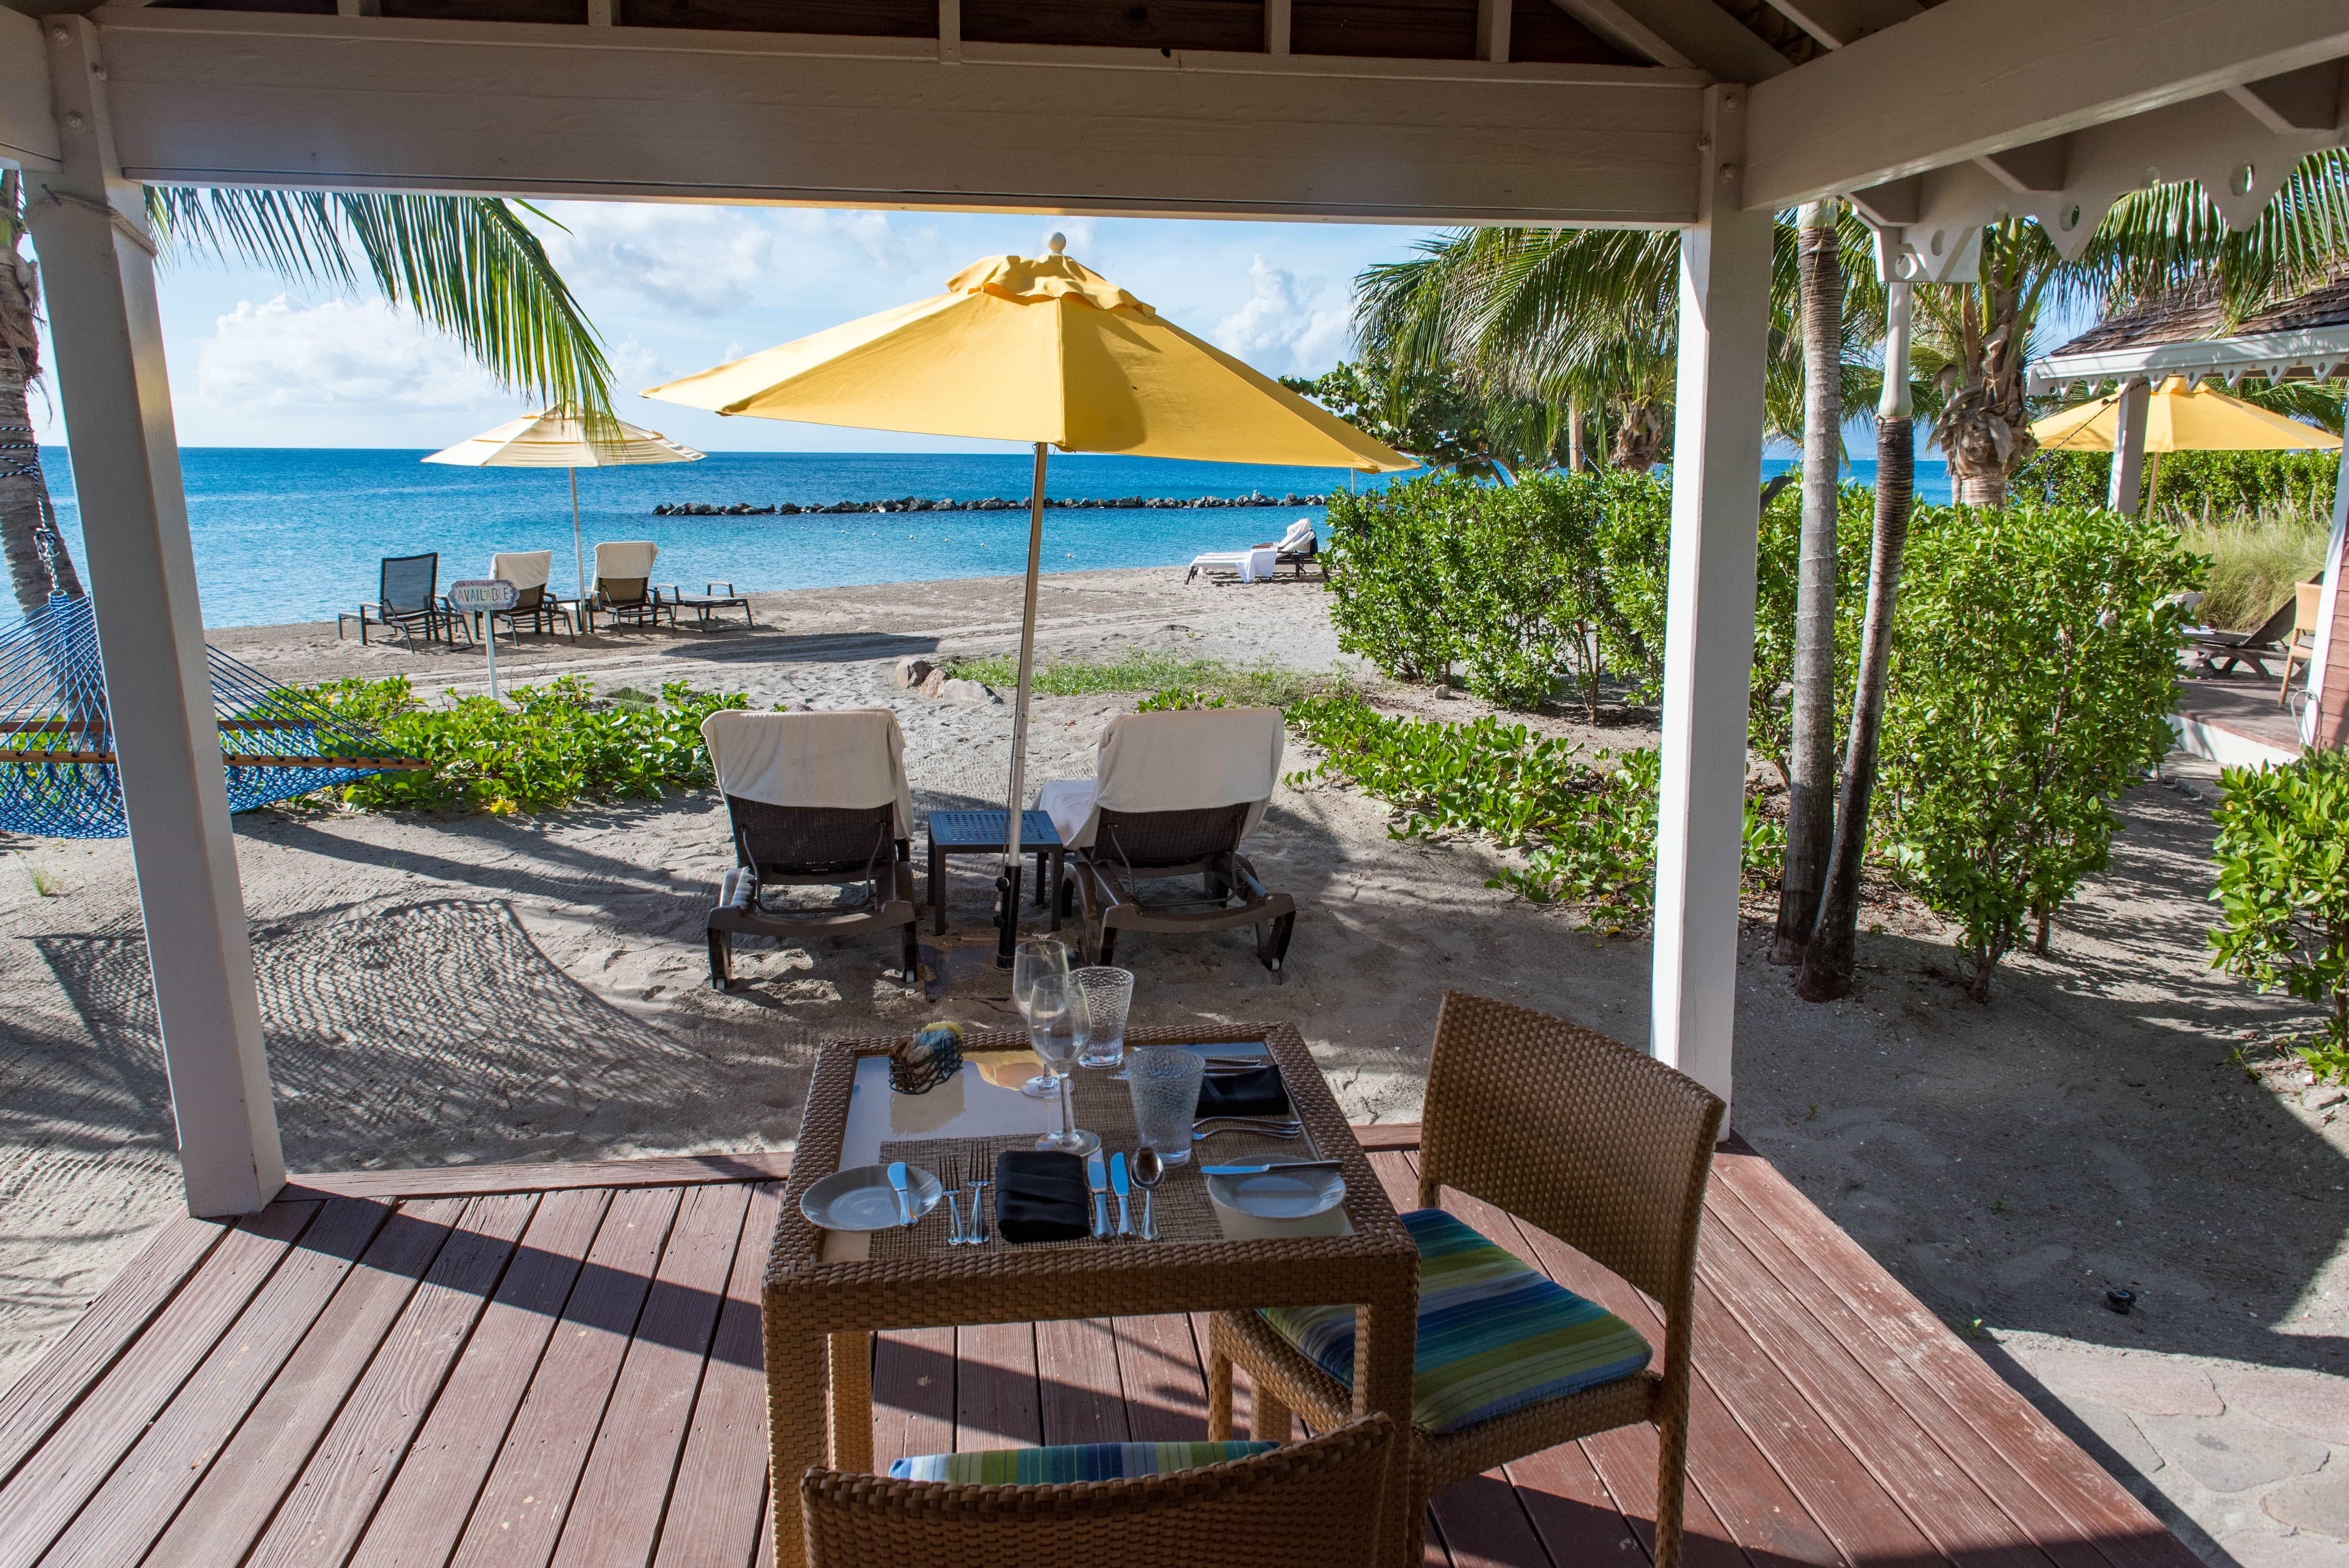 For even more beach, cabanas are available for guests to reserve their own private time on the sand.